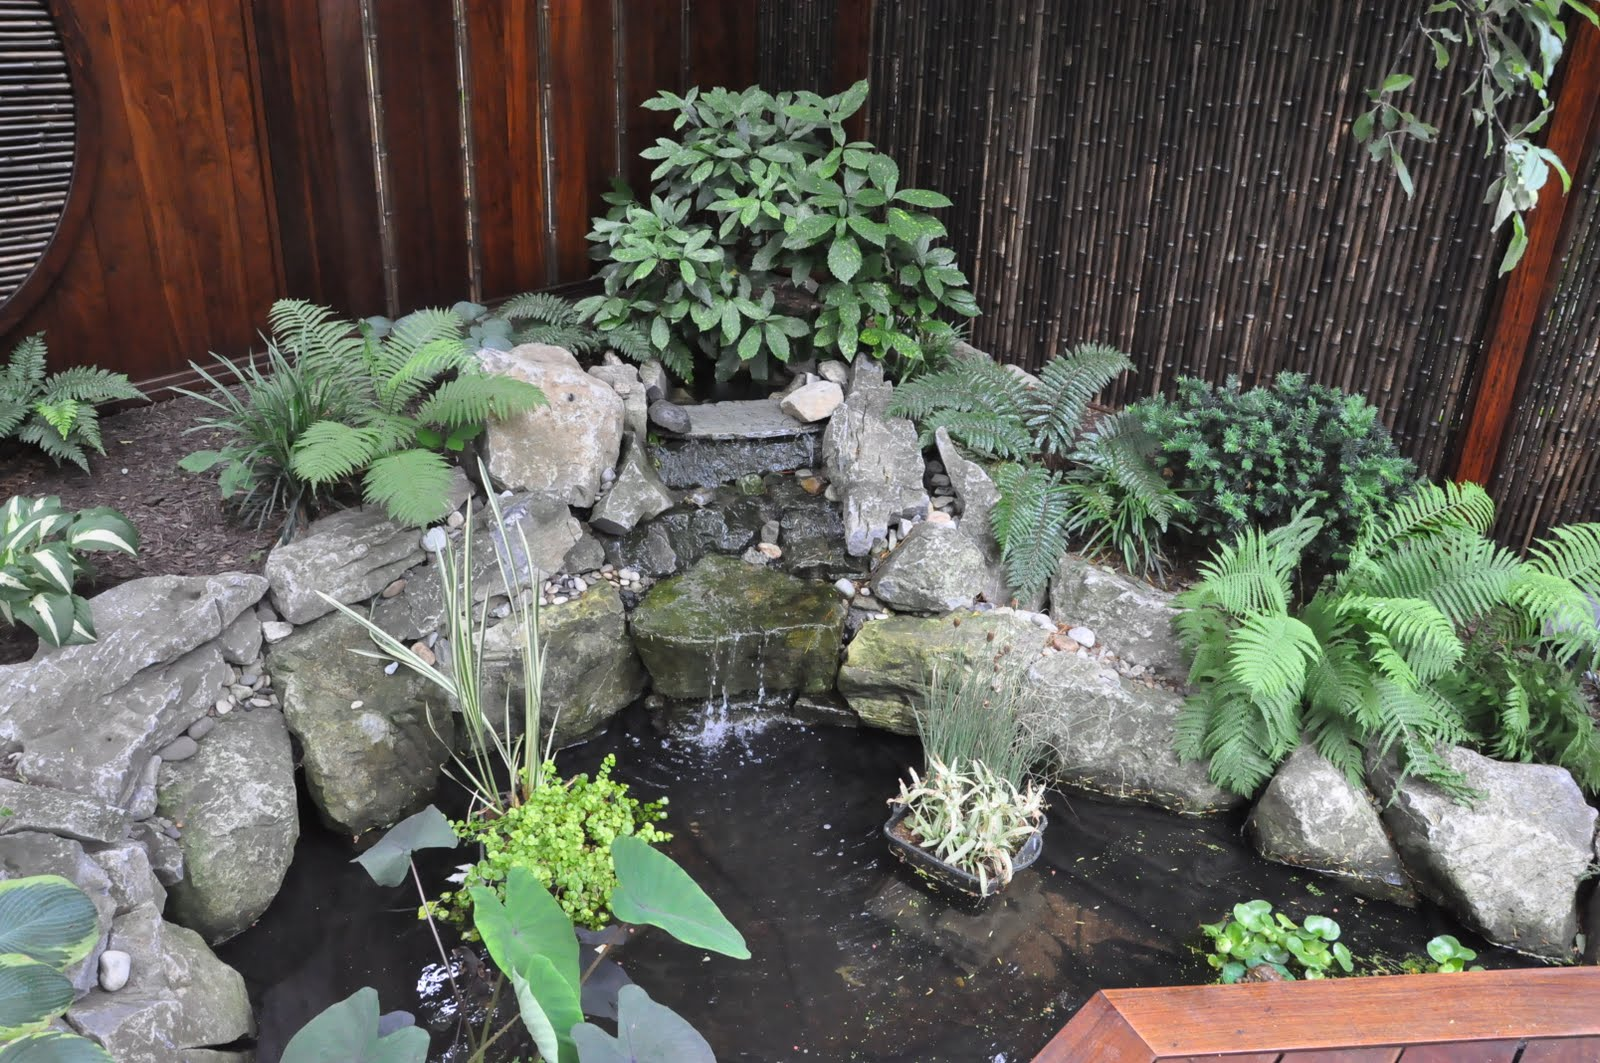 The hoboken journal hoboken secret garden tour part 1 Small rock garden